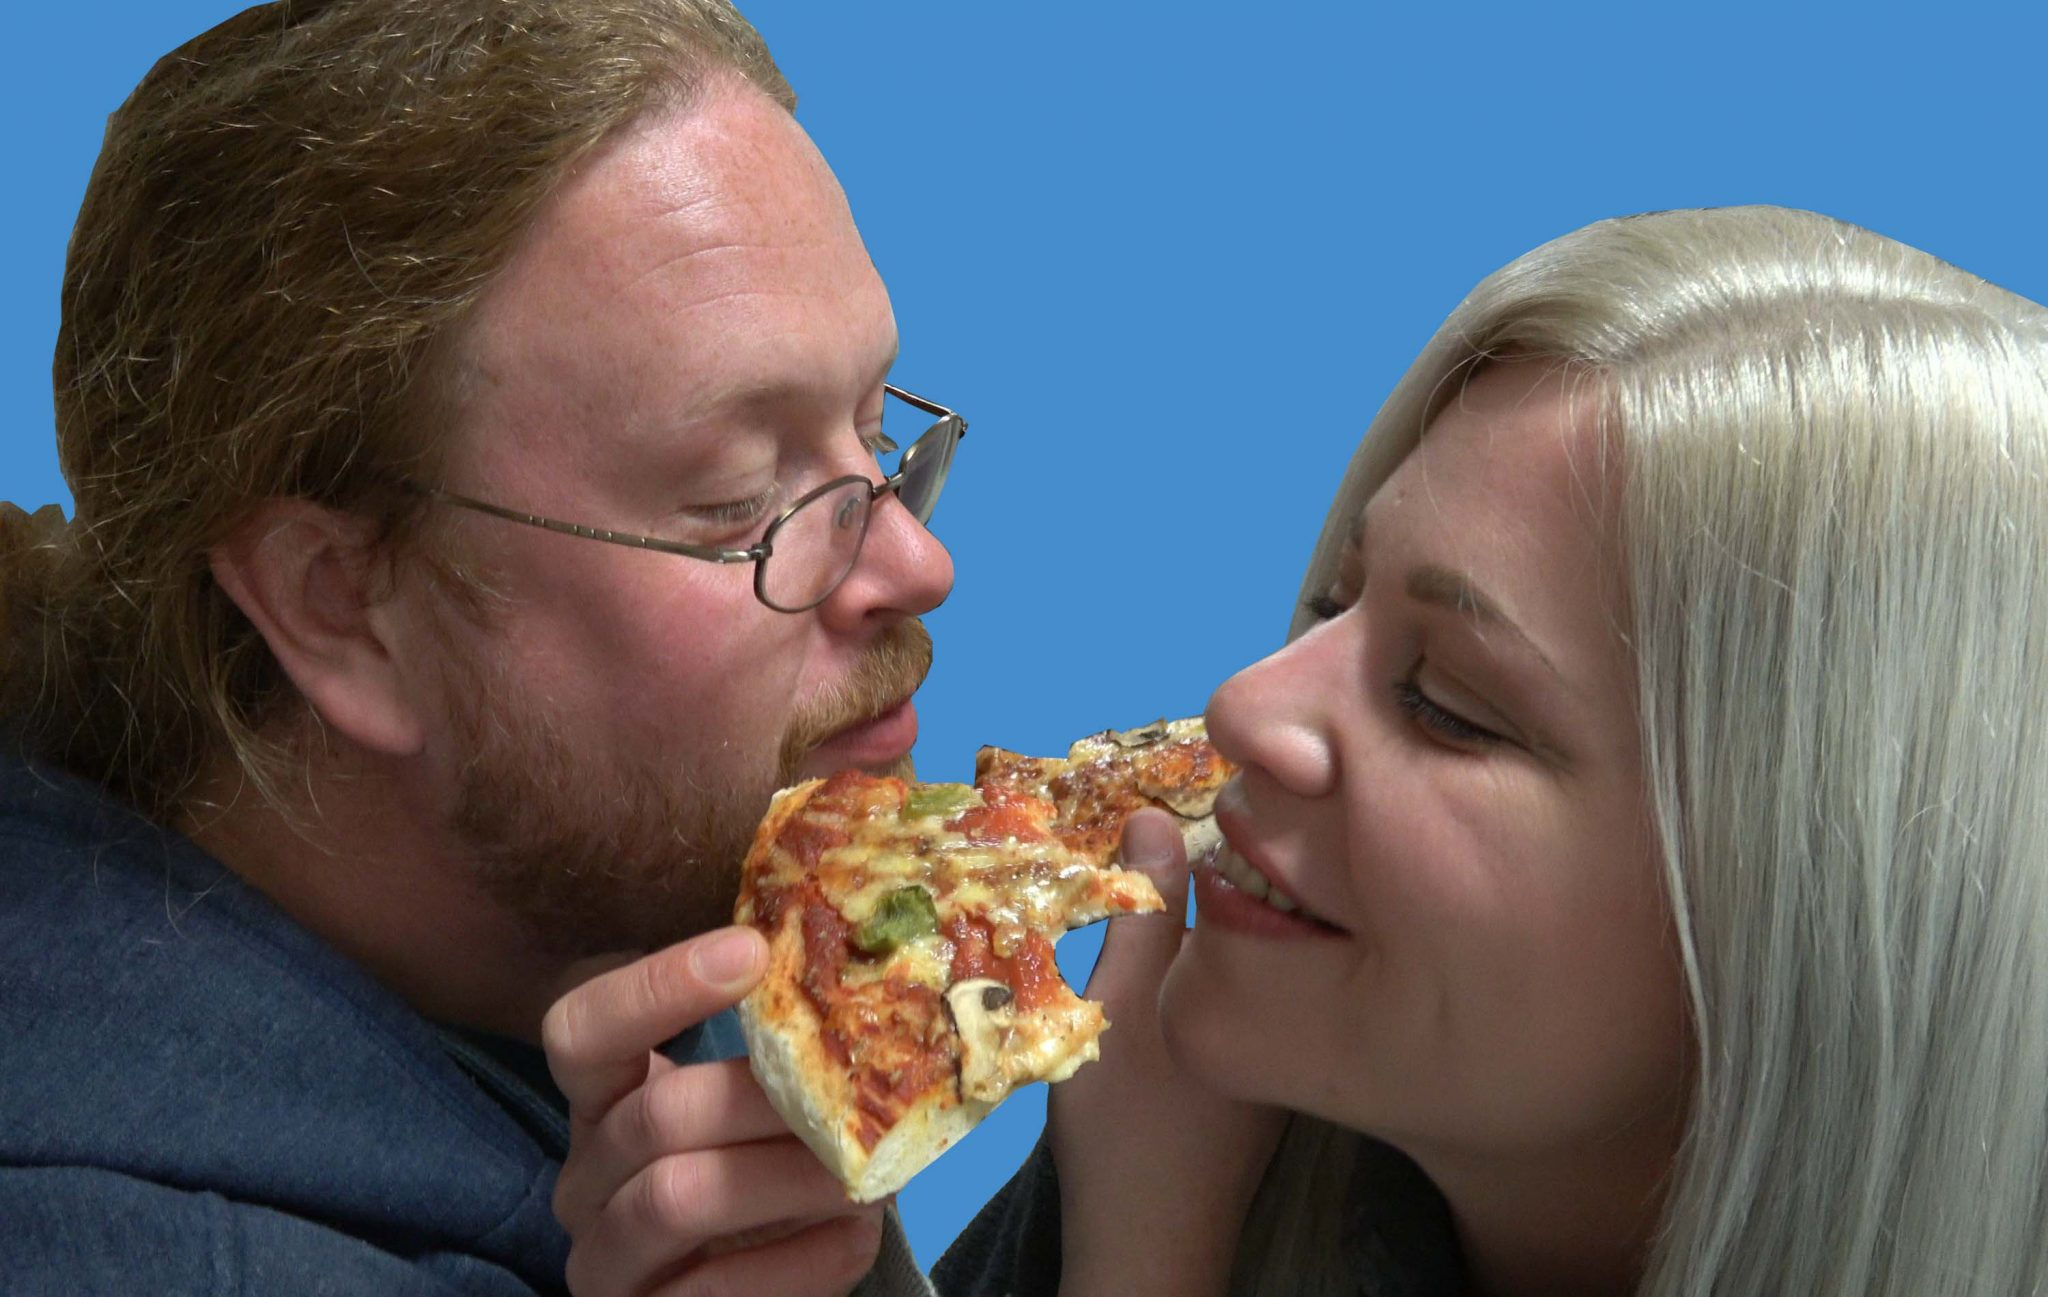 Tim and Christine cross arms to eat their delicious homemade pizza.